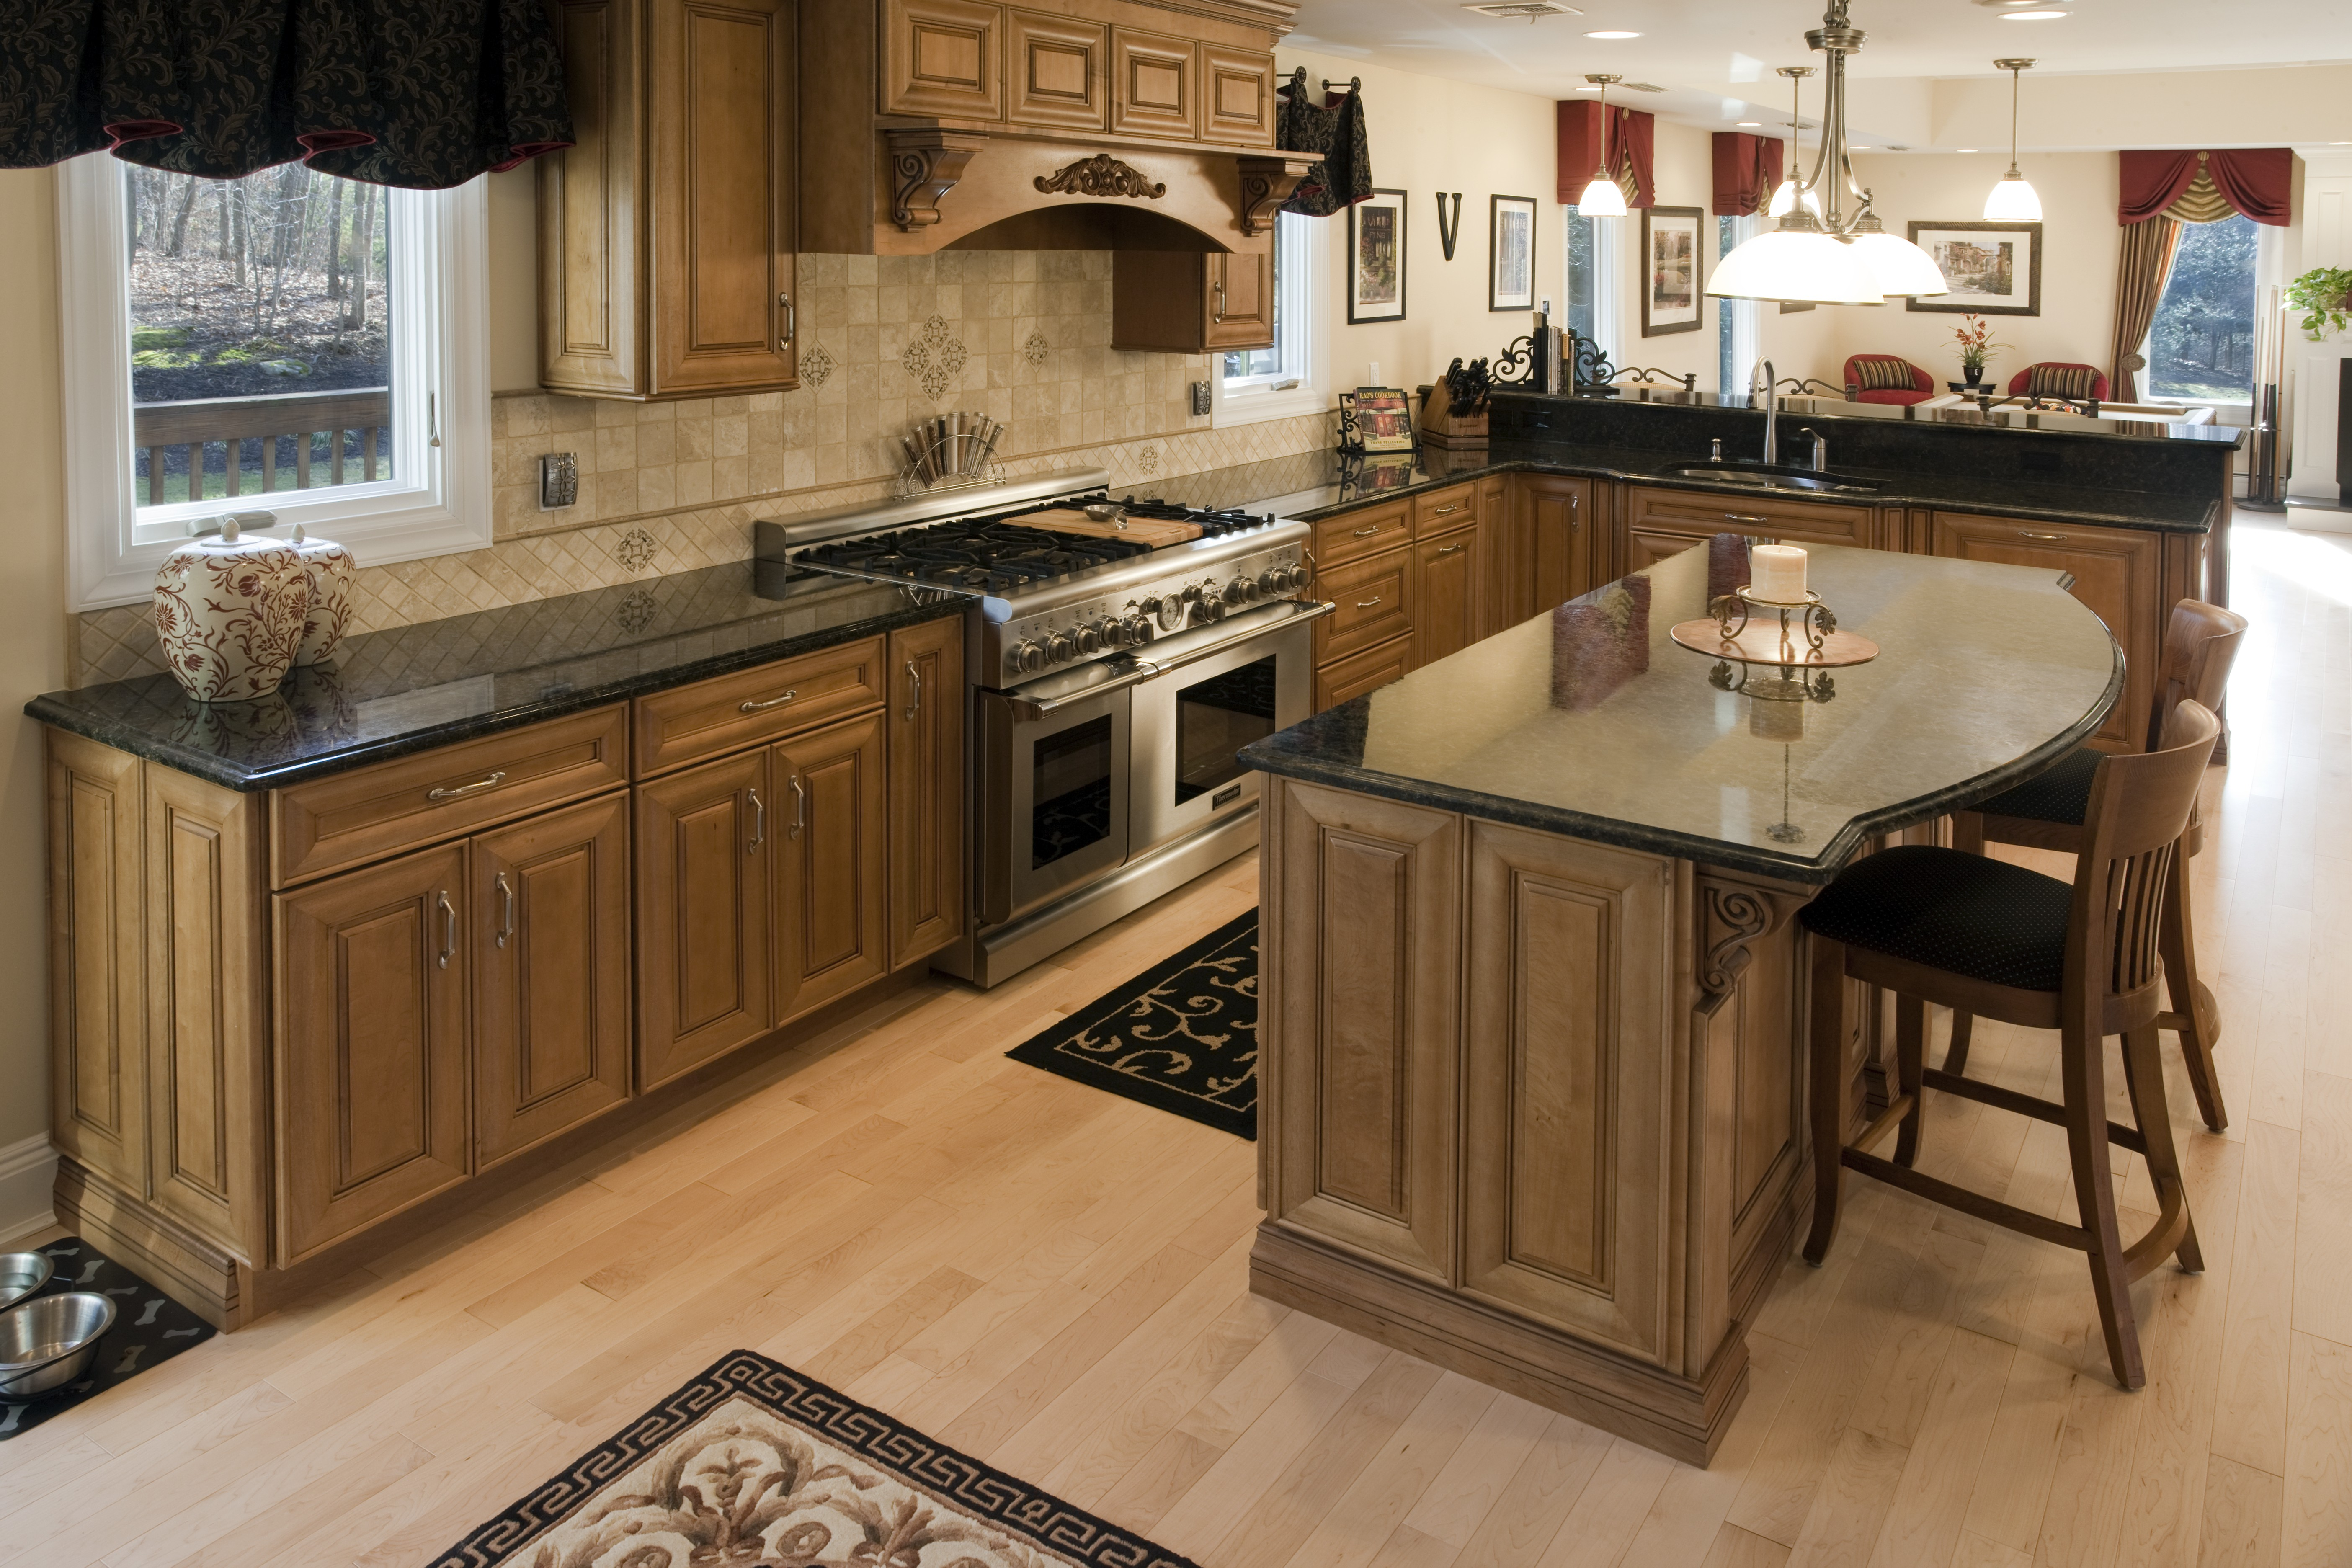 ... Stainless Steel Appliances Blend Perfectly Rather Than Standing Out And  Moving Attention From The Focal Pointu2026. The Butterfly Green Granite  Countertops.